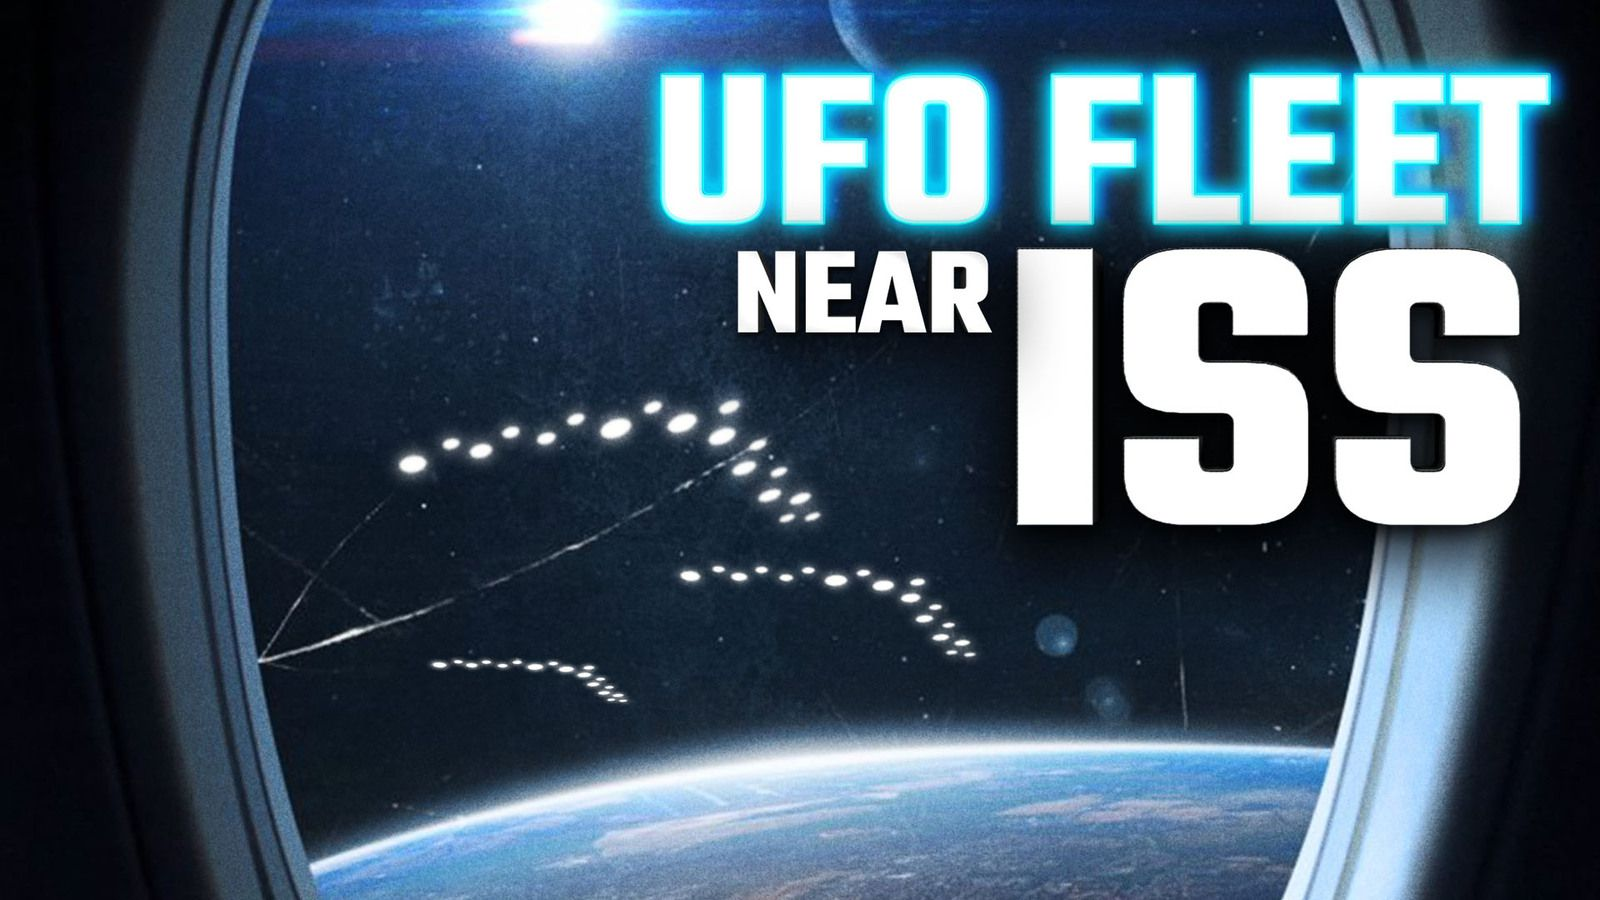 UFO SIGHTING NEWS : FLEETS OF UFOS Spotted near ISS in NASA LIVE Stream 👽